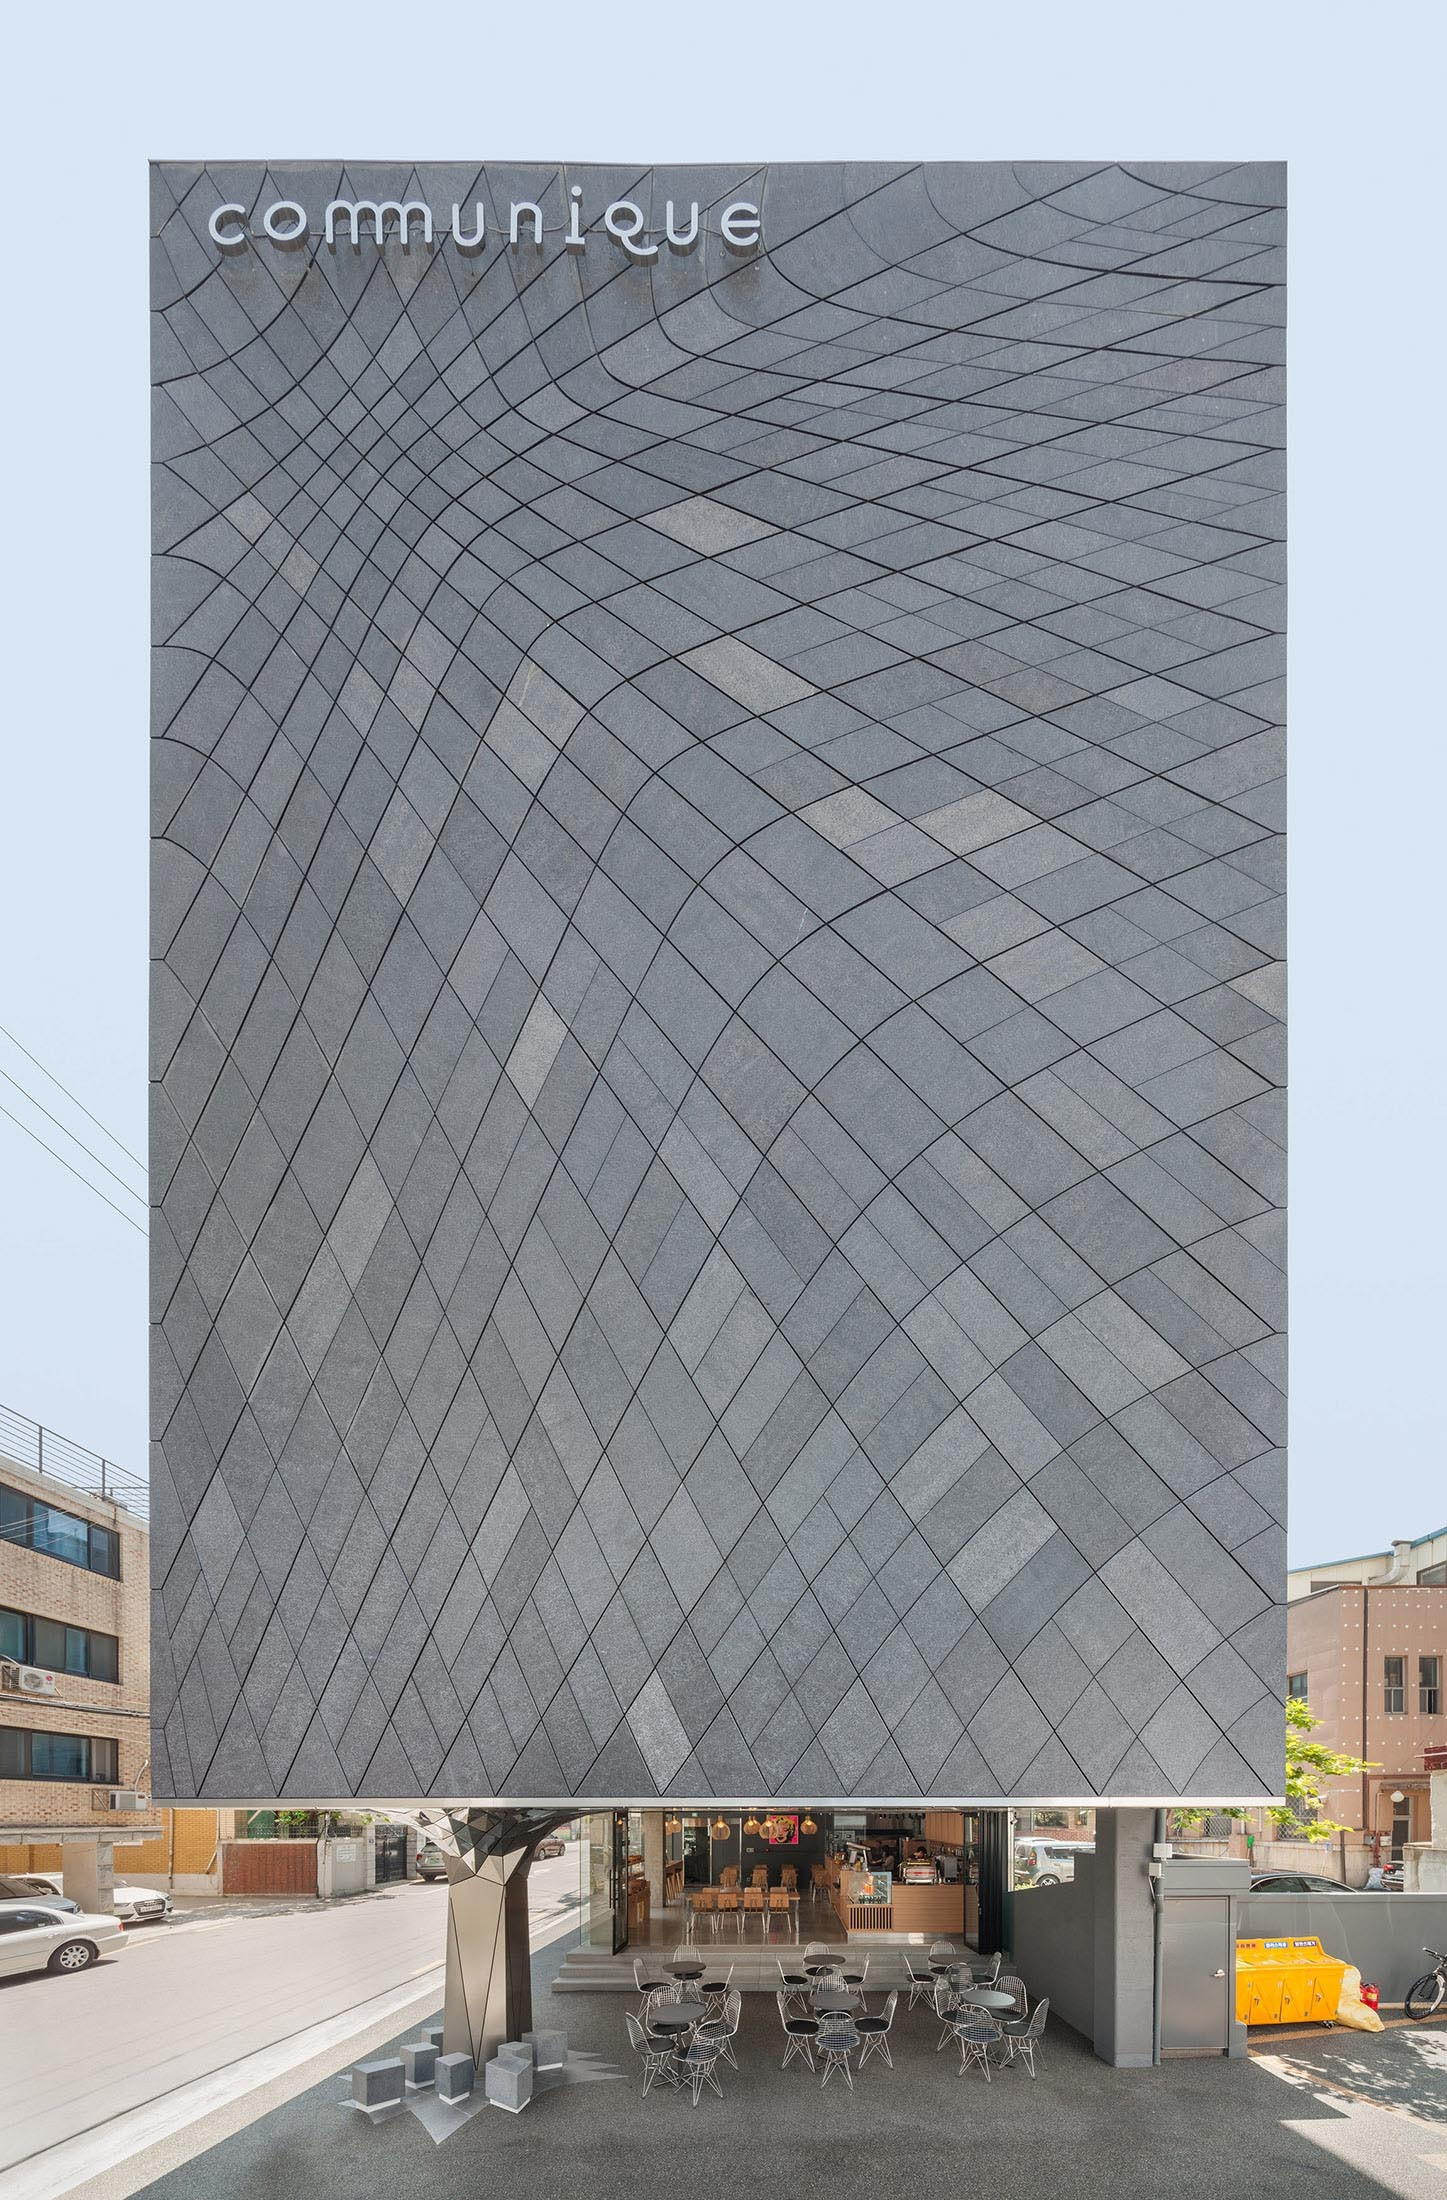 Communique Headquarters / DaeWha Kang Design